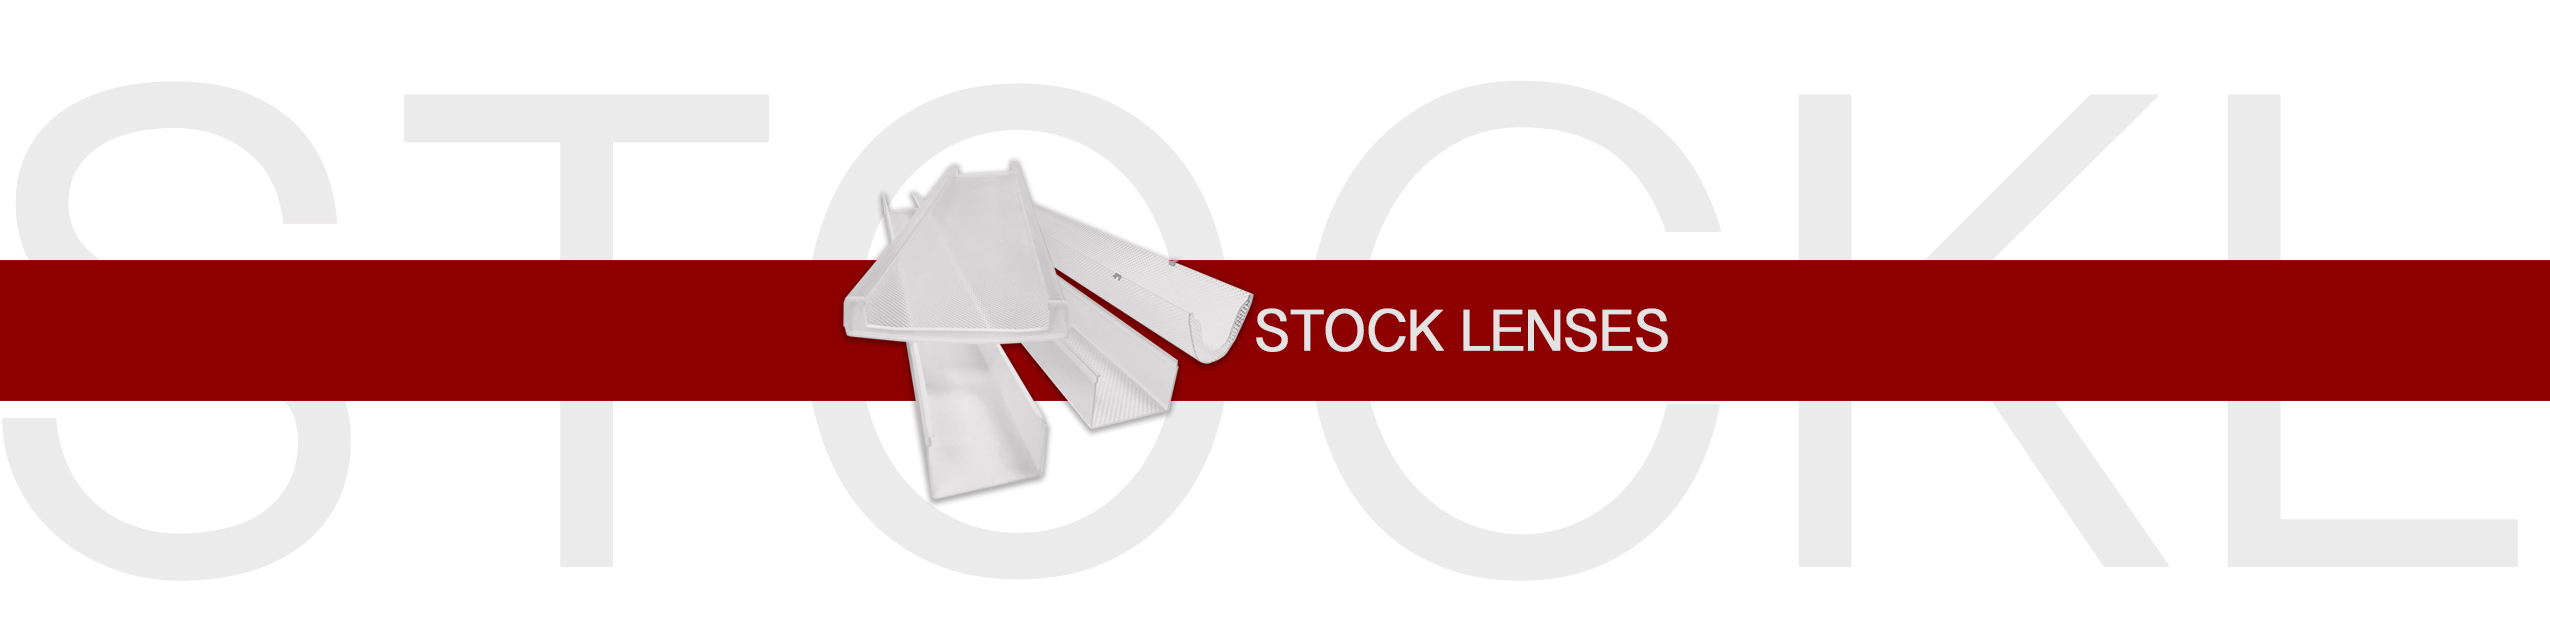 STOCK LENSES BANNER